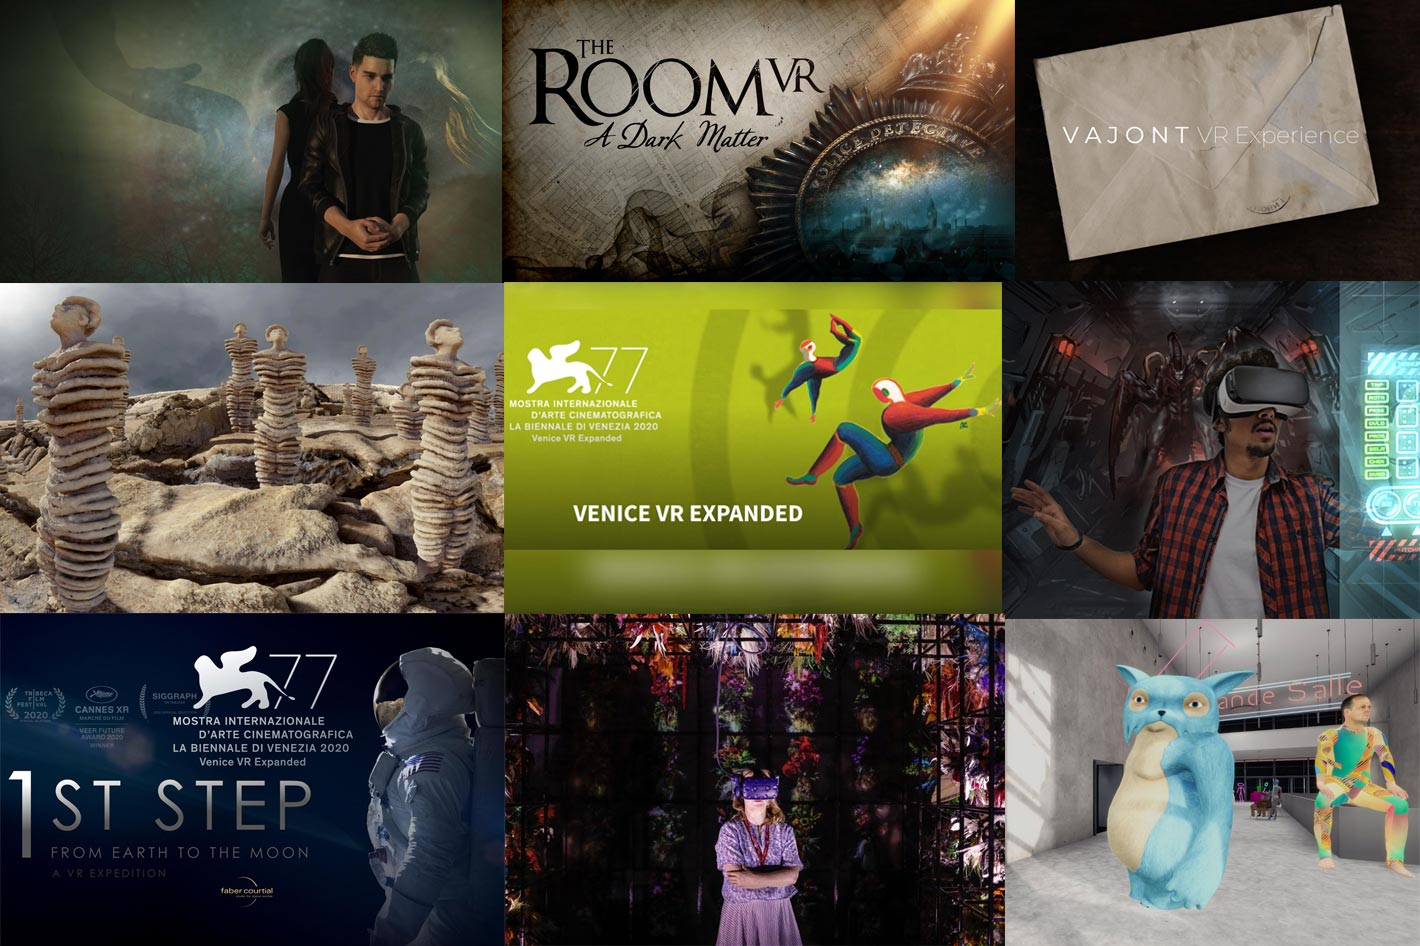 Venice VR Expanded: 44 projects from 24 countries